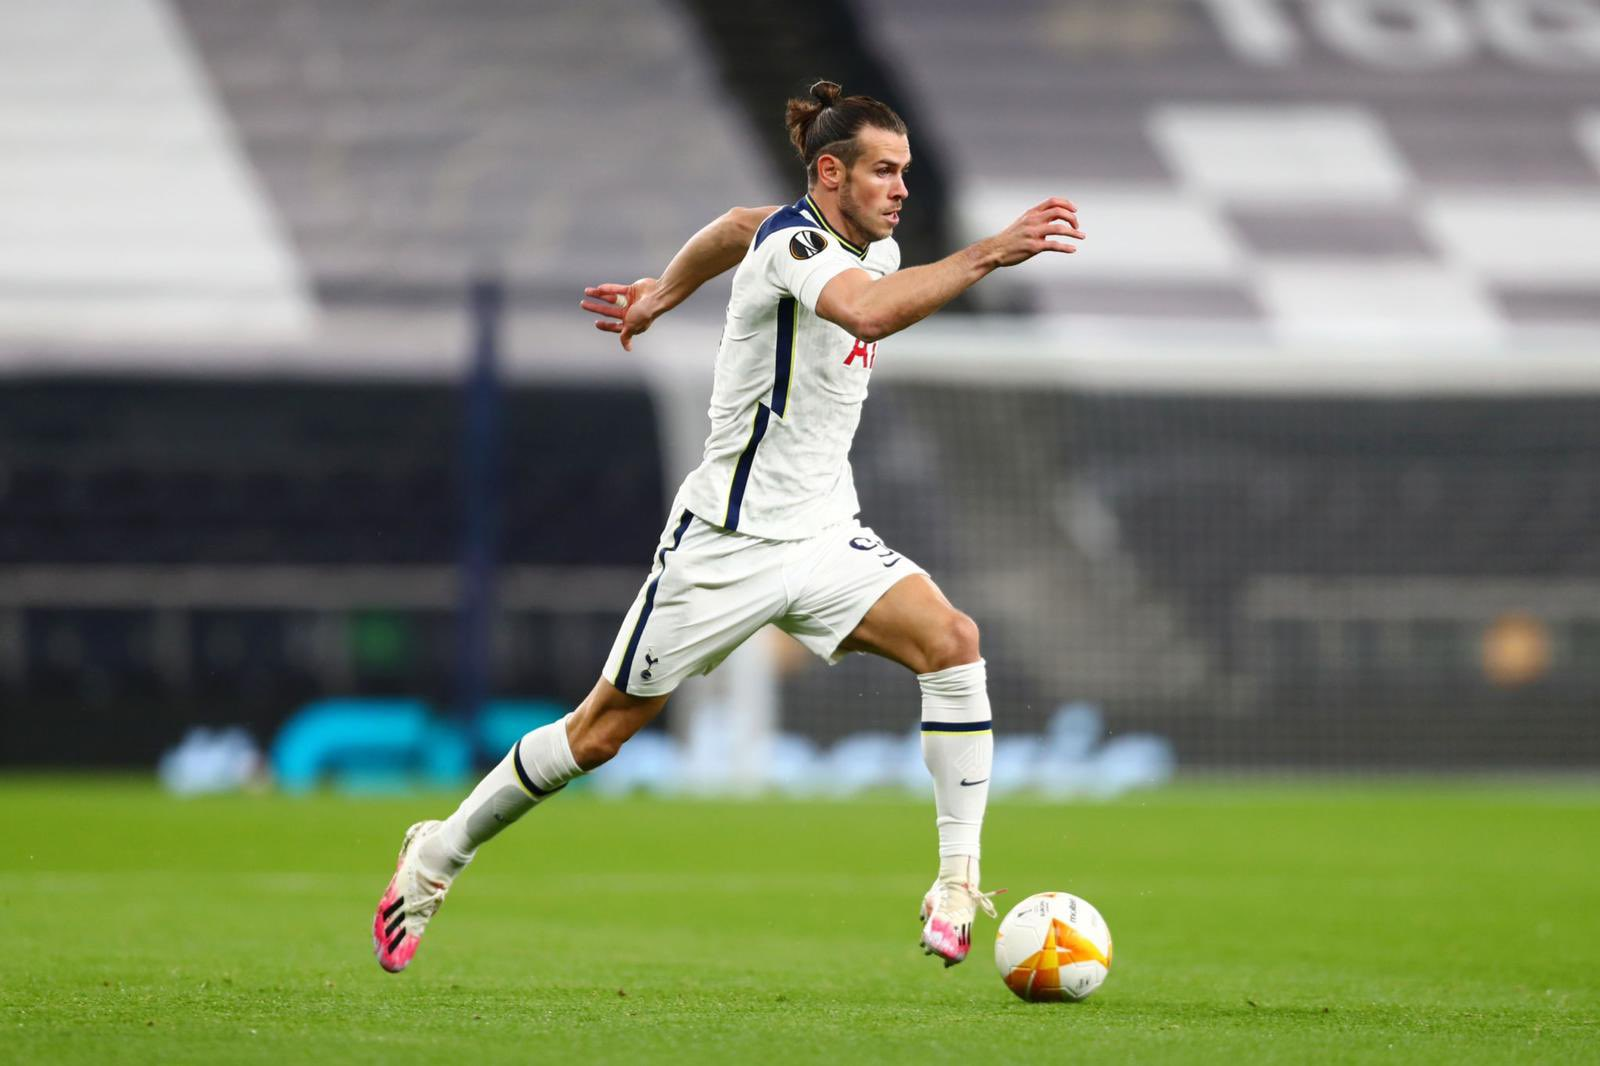 Gareth Bale got his first assist on his return to Tottenham Hotspur